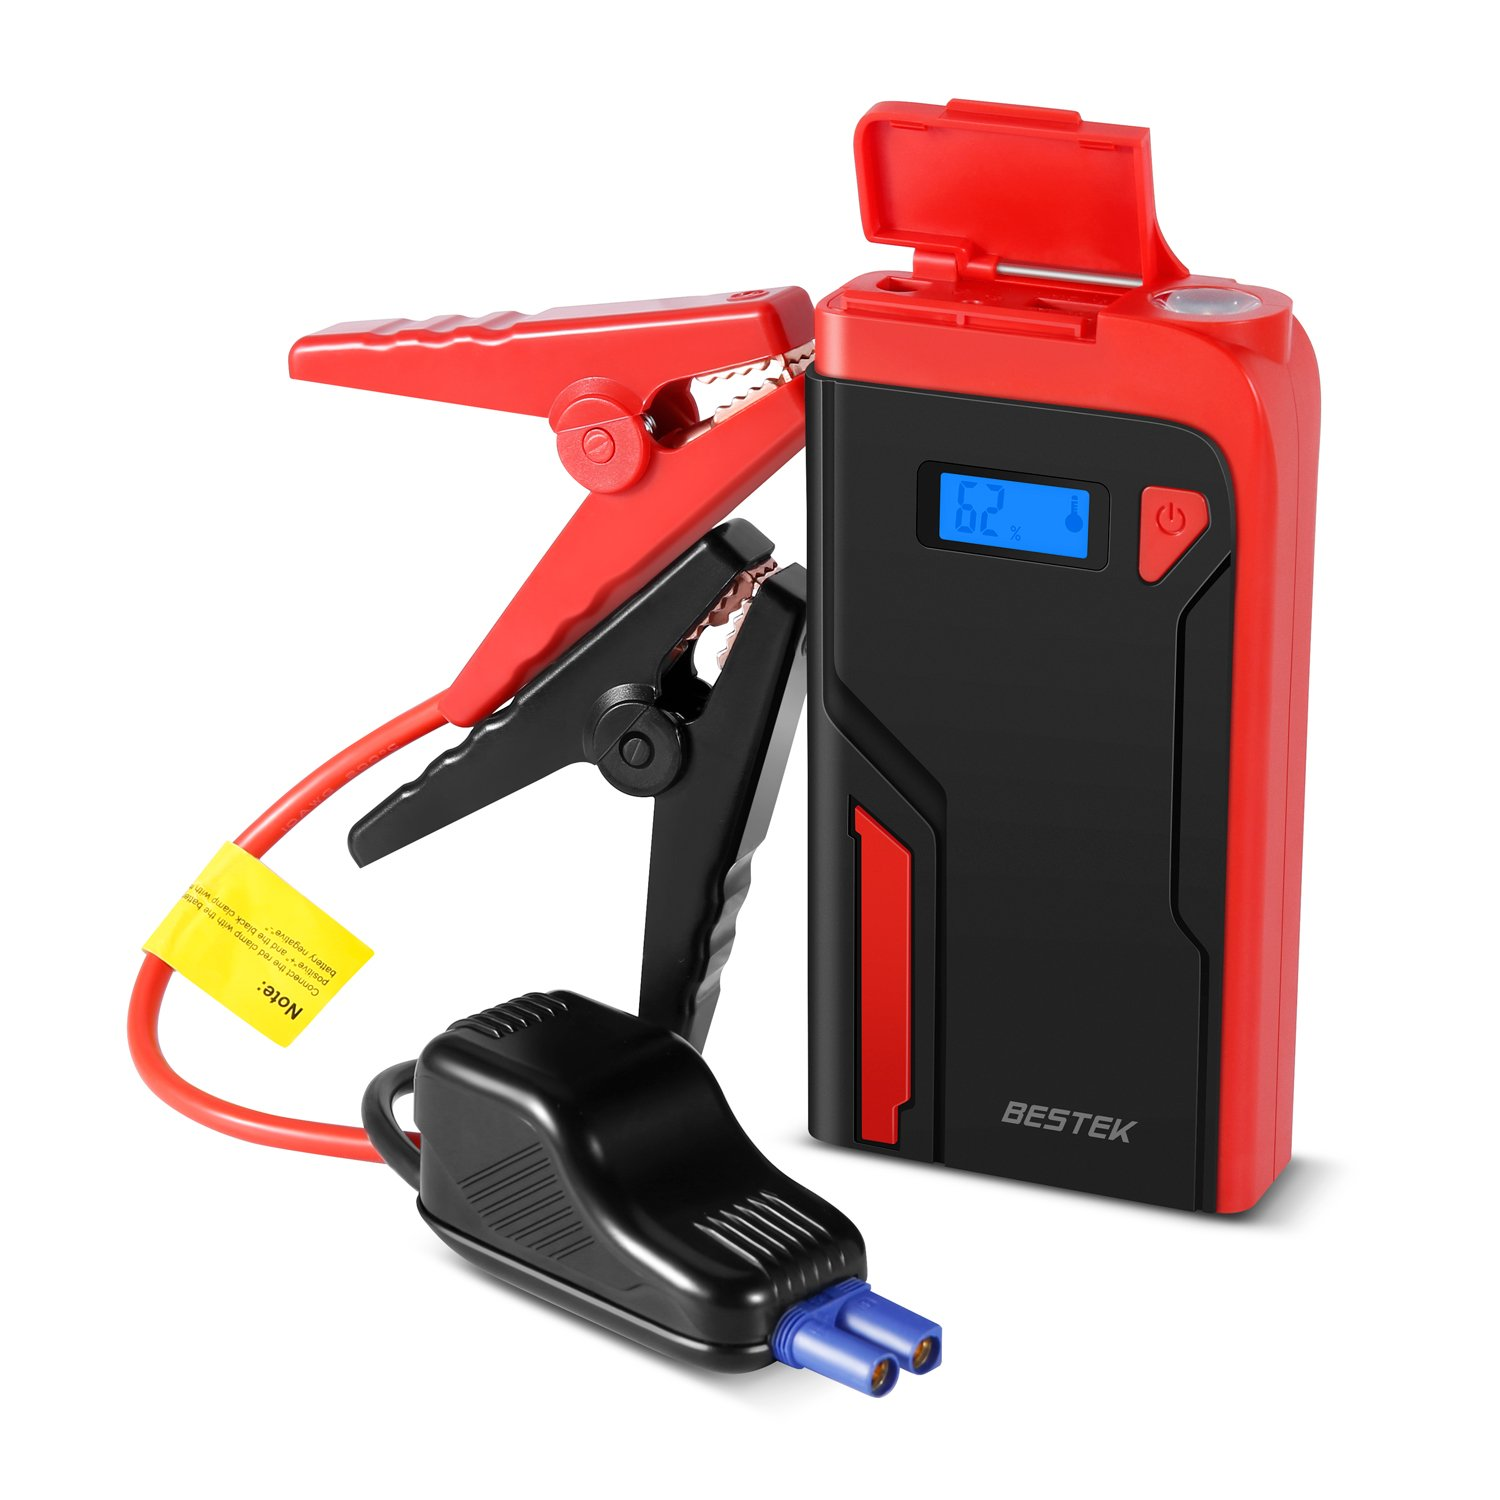 Car Jump Starter, BESTEK 400A 12000mAh 12V Portable Auto Battery Booster Pack, Power Bank with Dual USB Ports LED Light LCD Screen by BESTEK